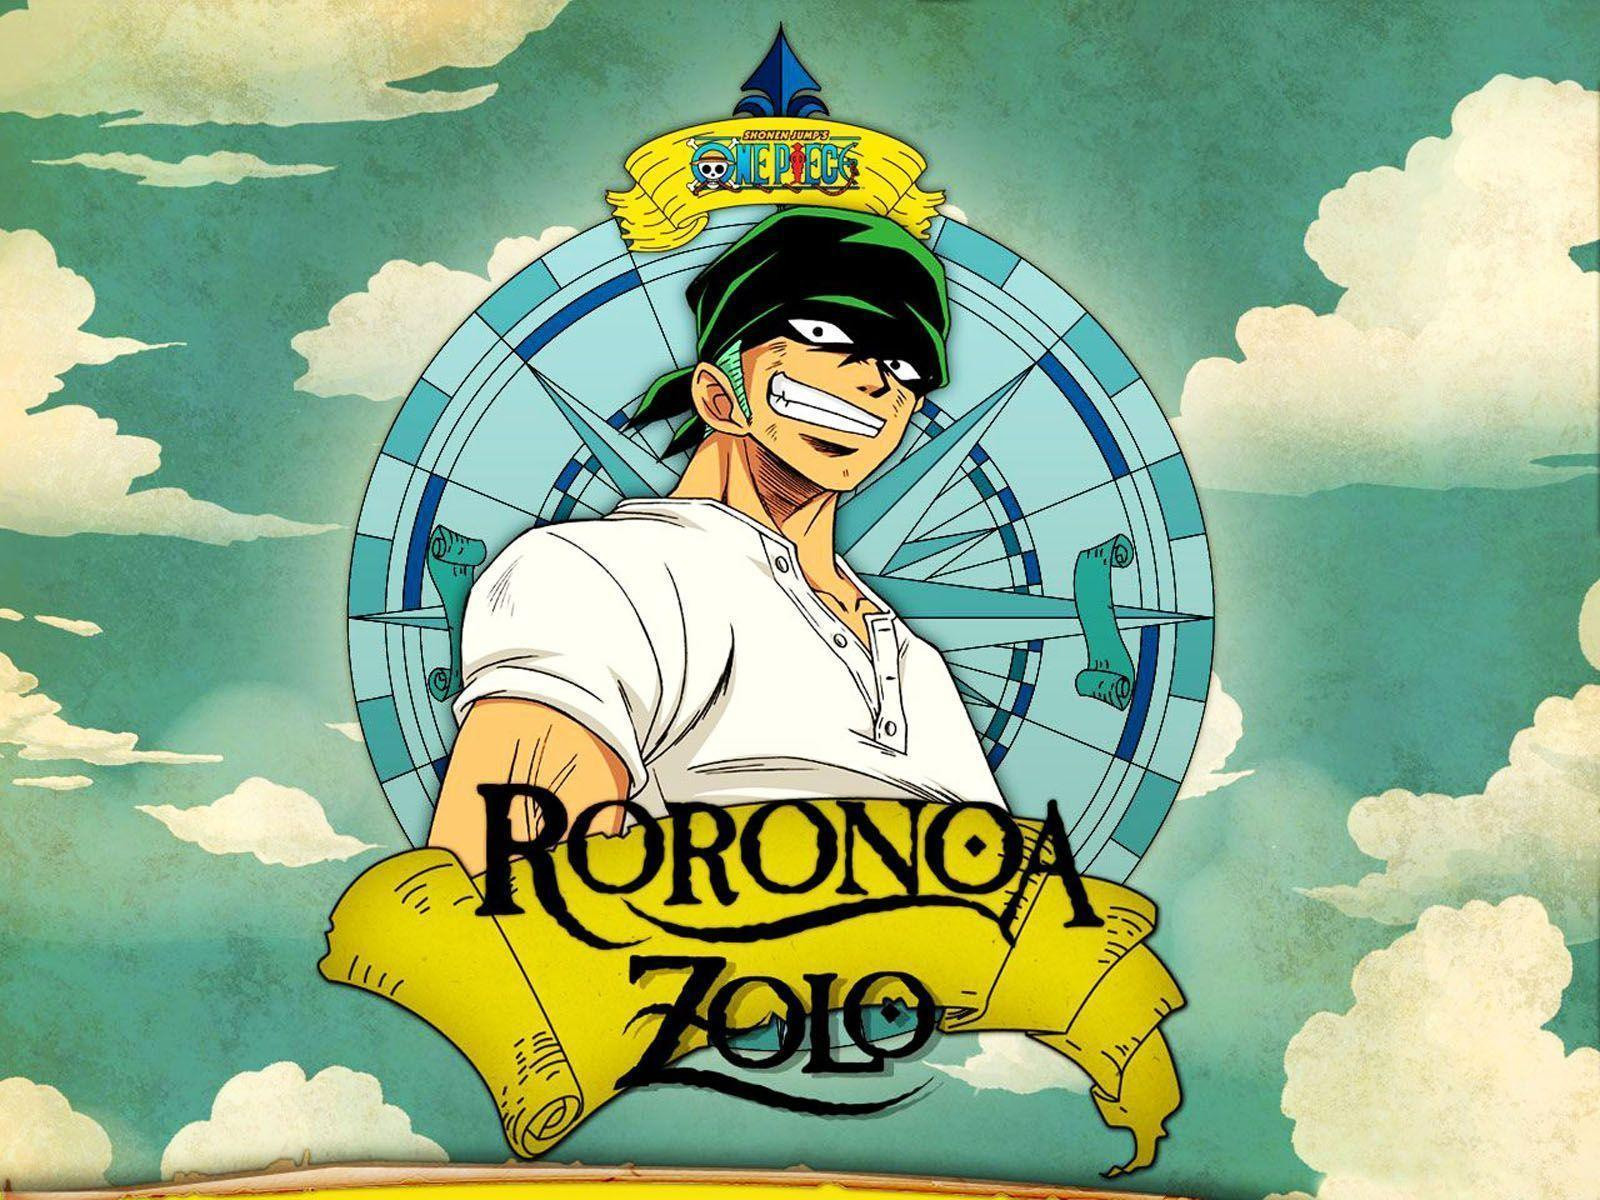 One piece zoro wallpapers wallpaper cave - One piece logo zoro ...